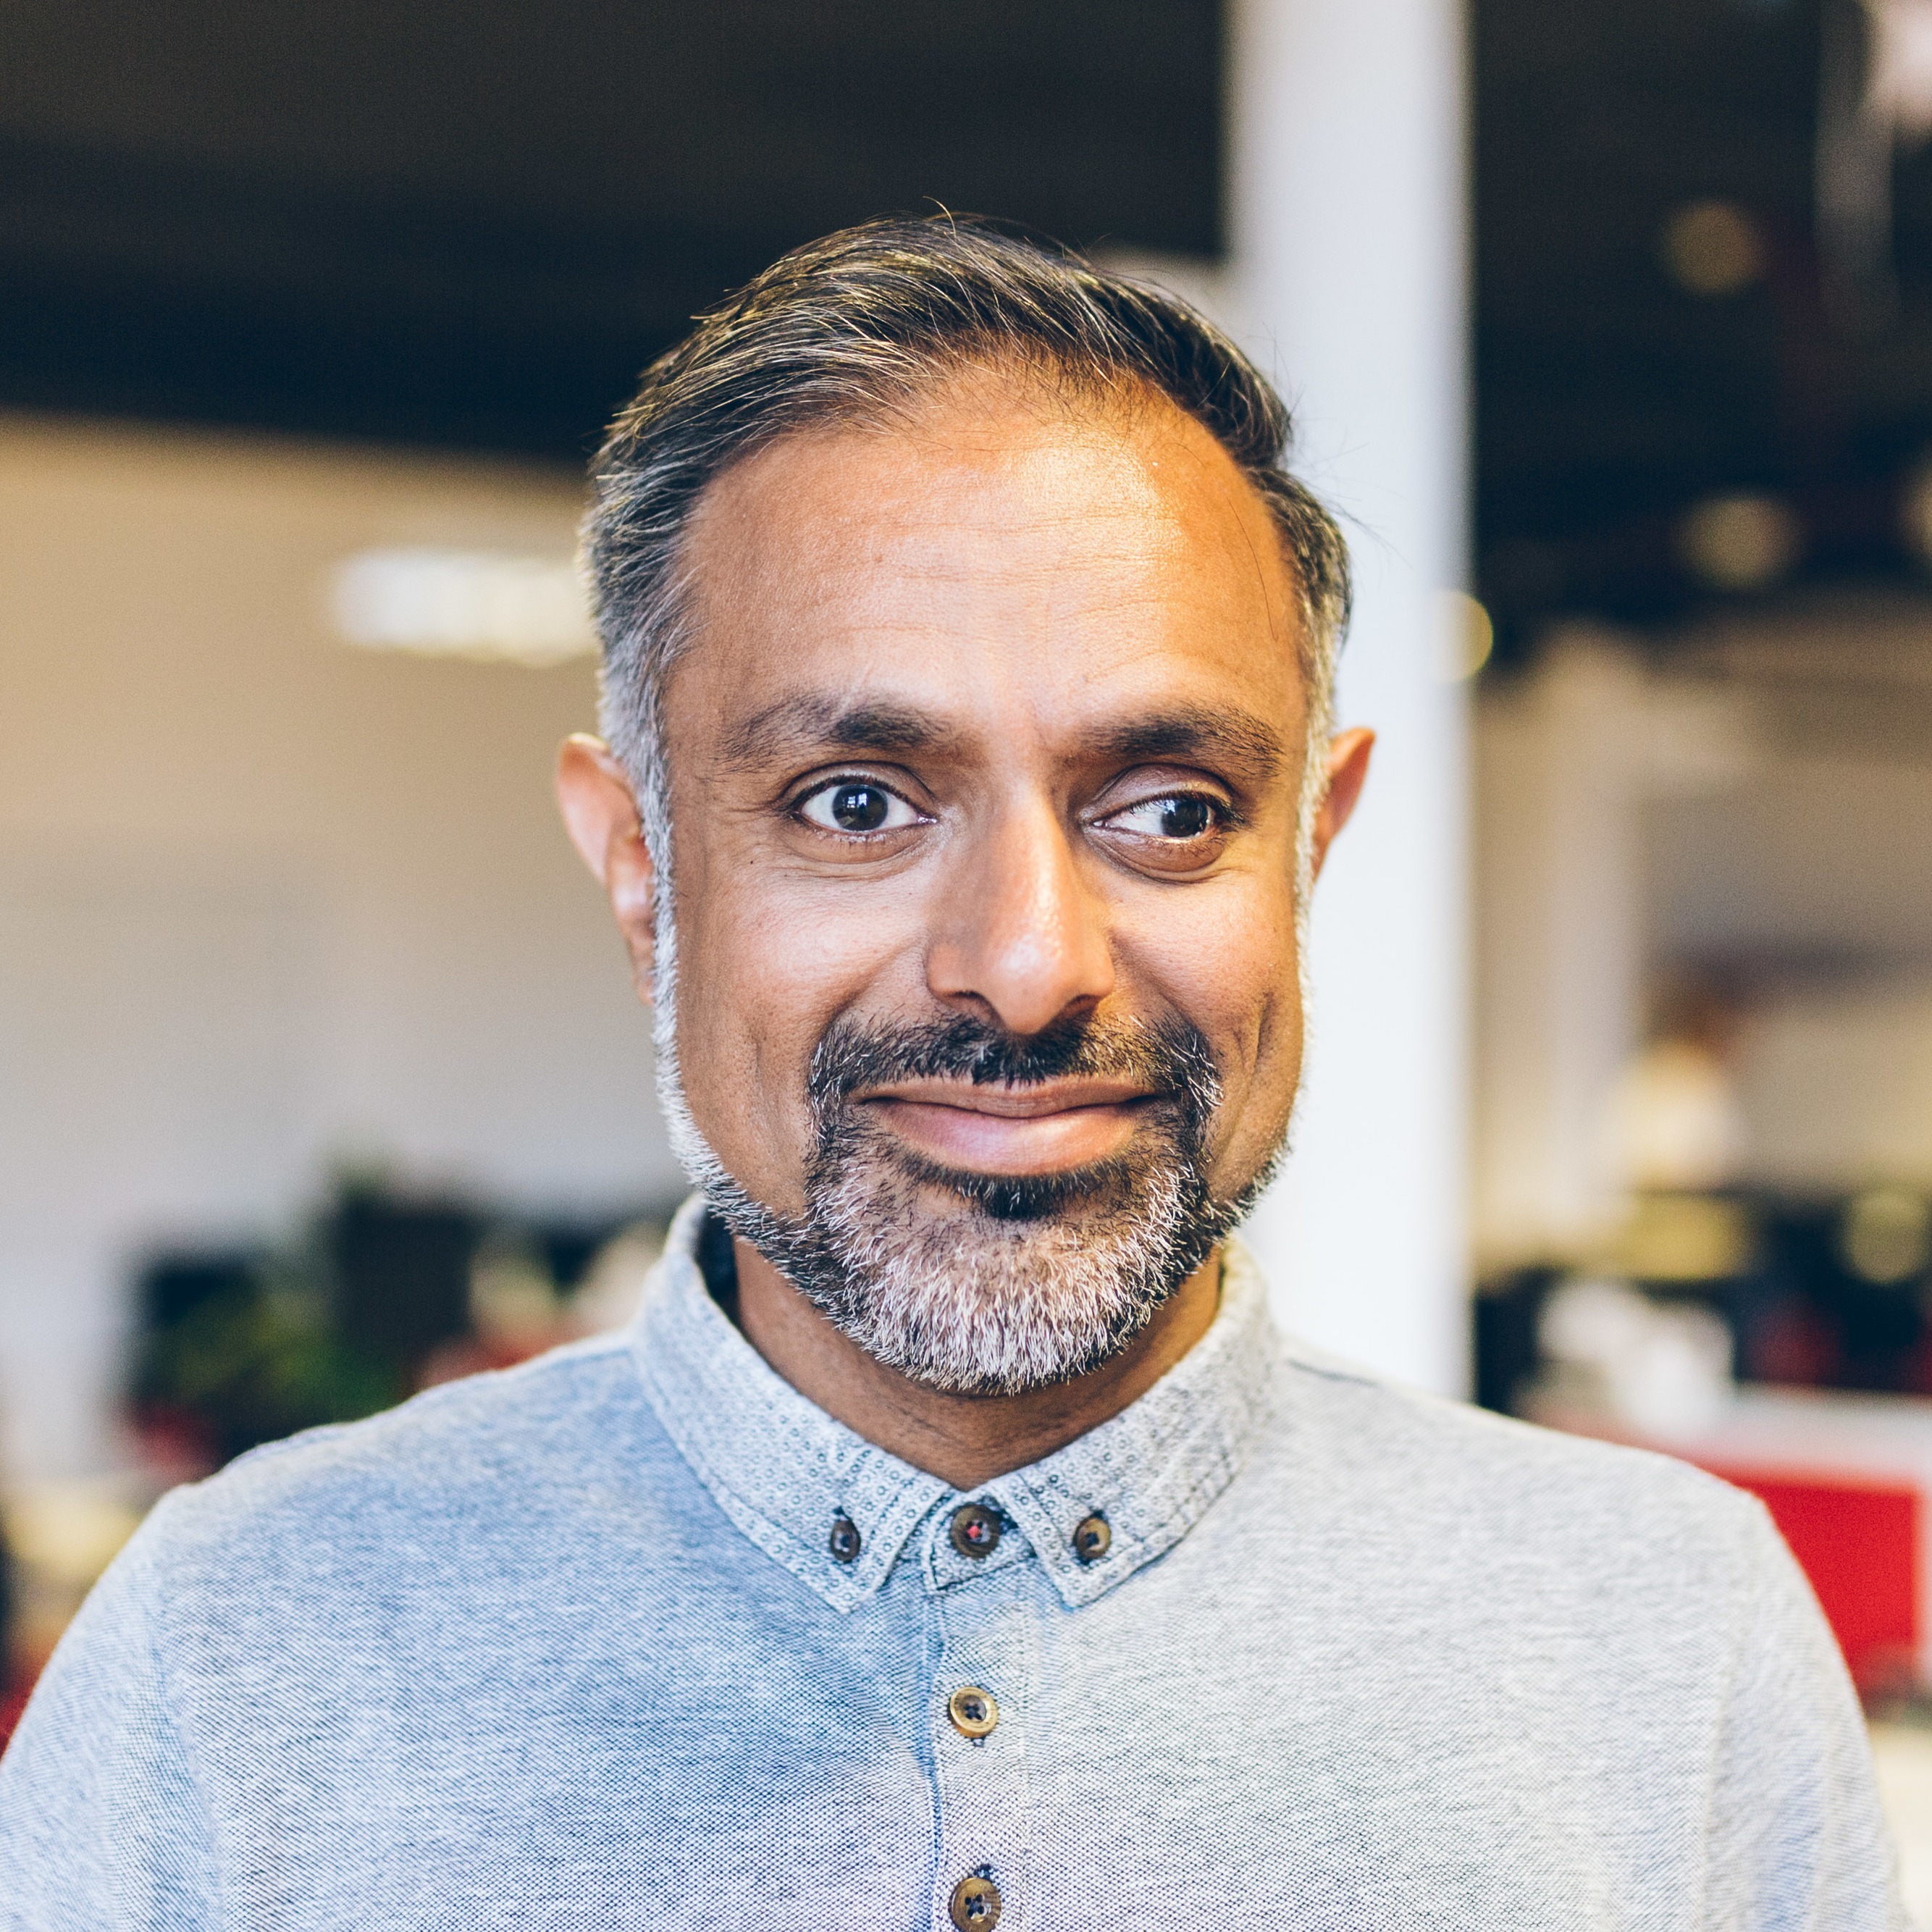 learn to code Manchester Amul Batra Talent Director